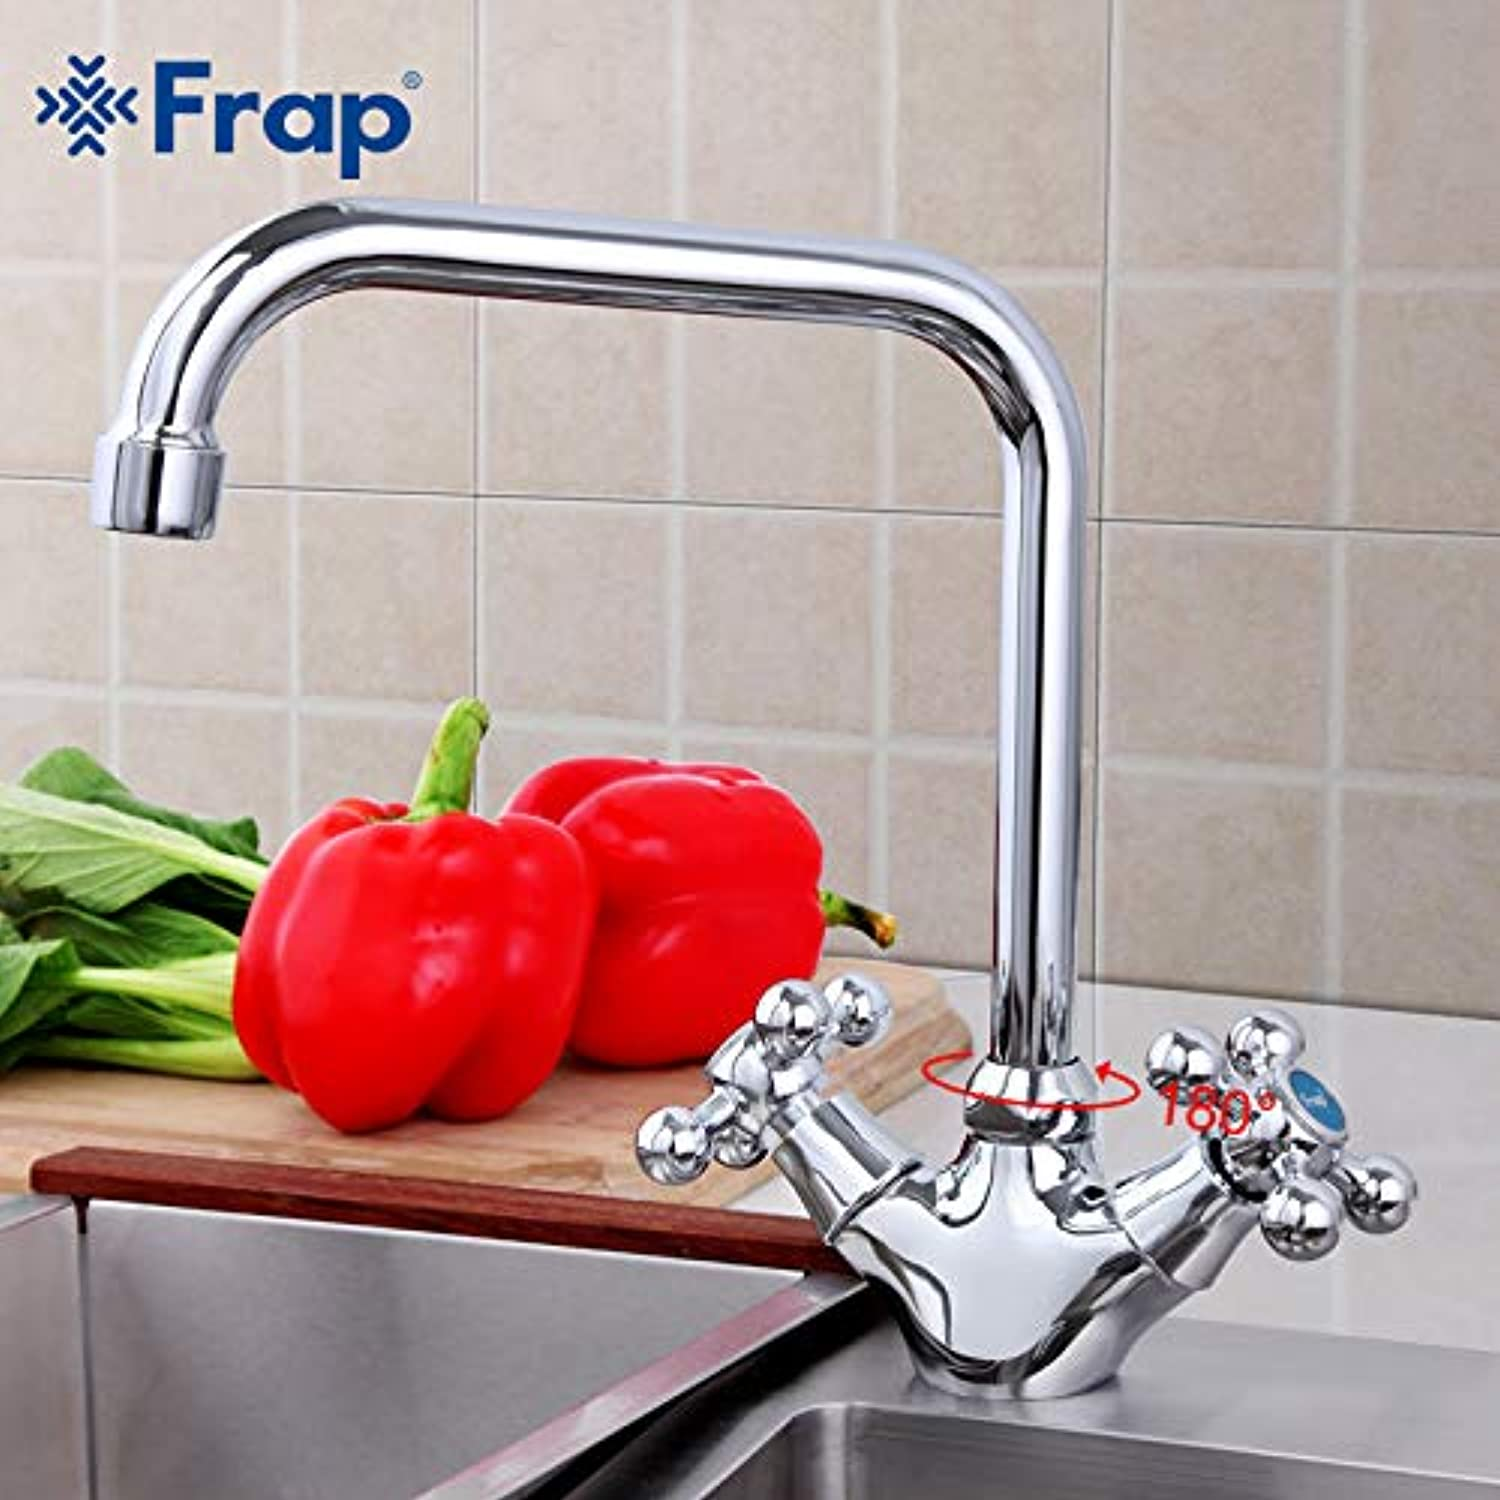 U-Enjoy Chandelier 360 Degree Stylish redation Alloy Top Quality Body Zinc Kitchen Sink Faucet and Cold Handle Hot Separation Taps F4019 F4019 Free Shipping